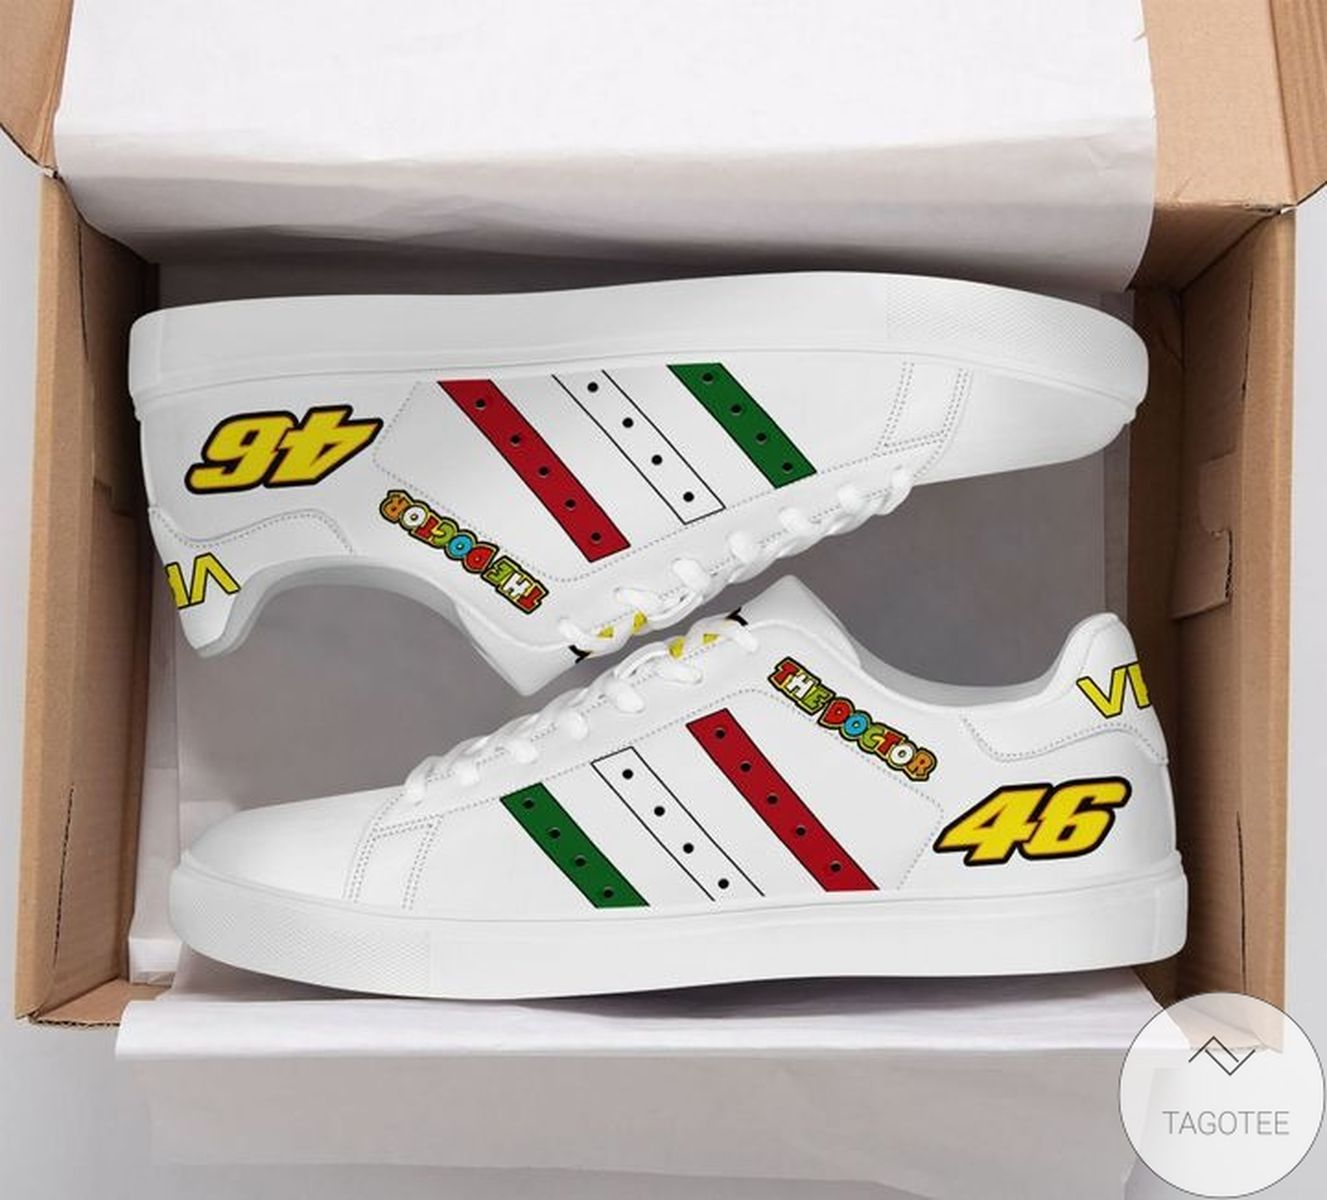 New Valentino Rossi Vr46 Stan Smith Shoes